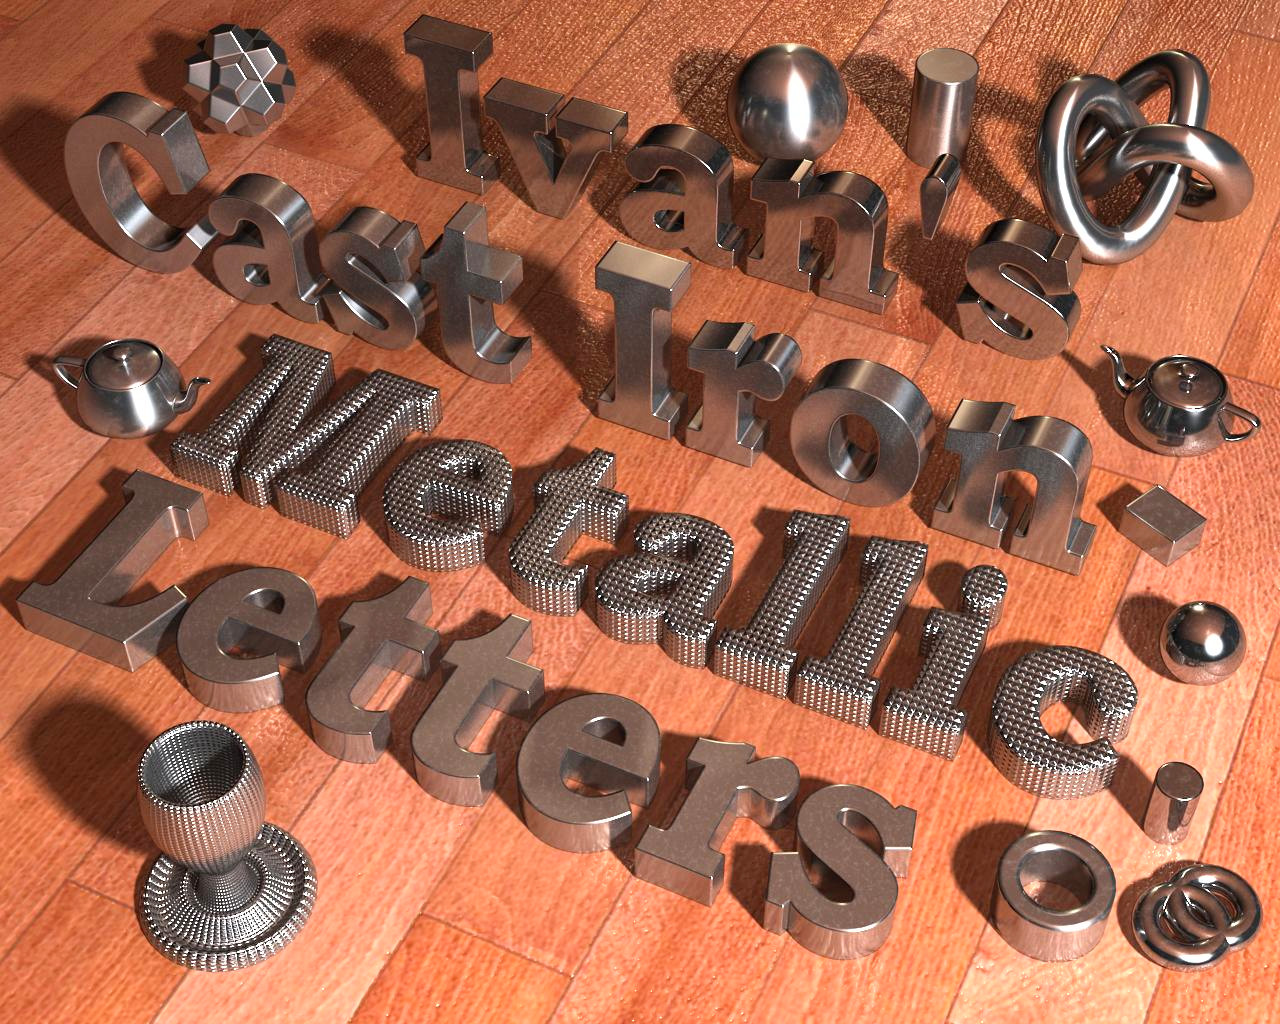 ivans cast iron metallic letters by bryceguy72